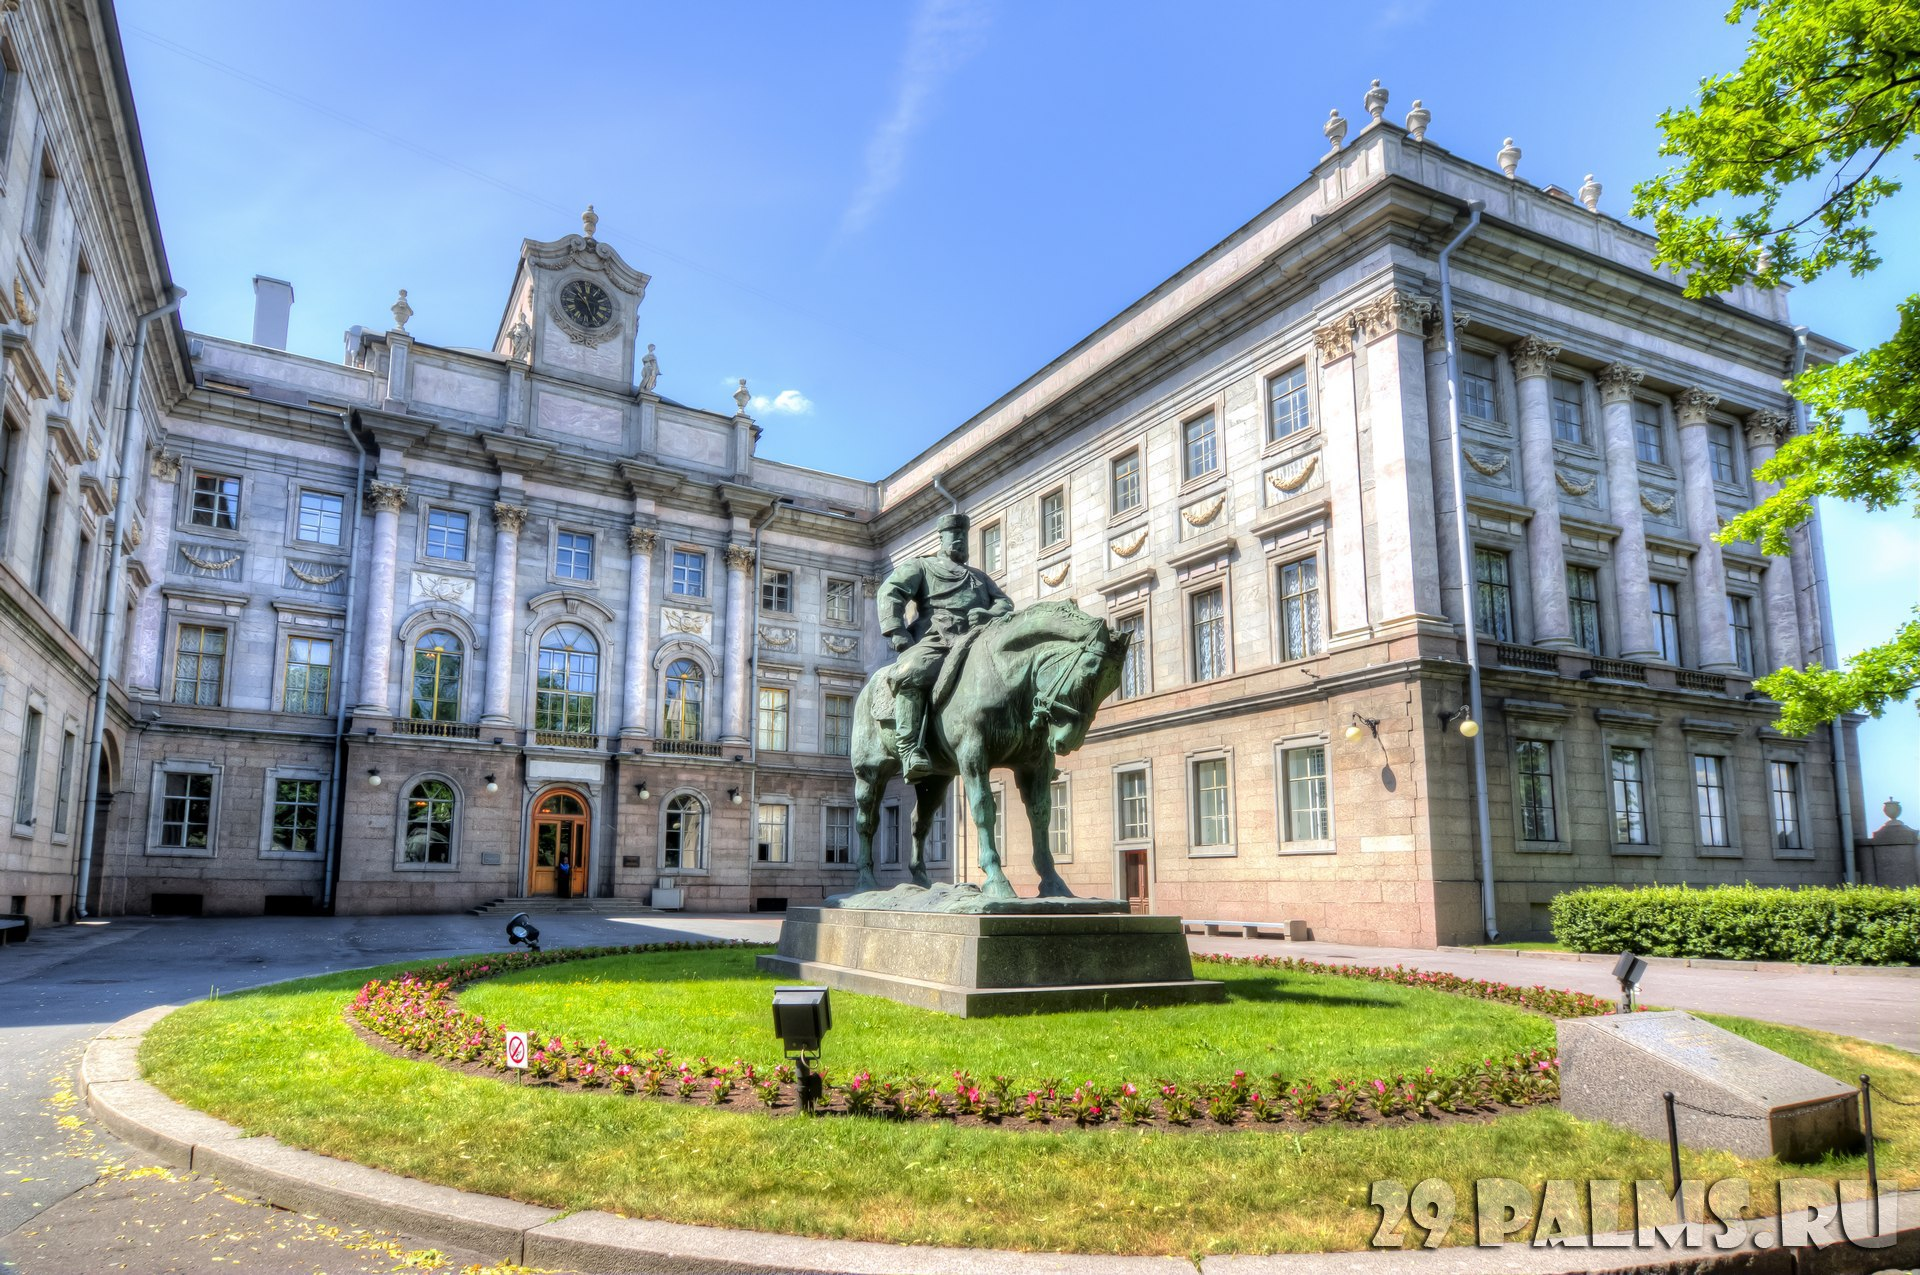 Россия. Санкт-Петербург. Мраморный дворец. Monument to Alexander III in front of the Marble Palace, St. Petersburg, Russia. Фото mistervlad - Depositphotos